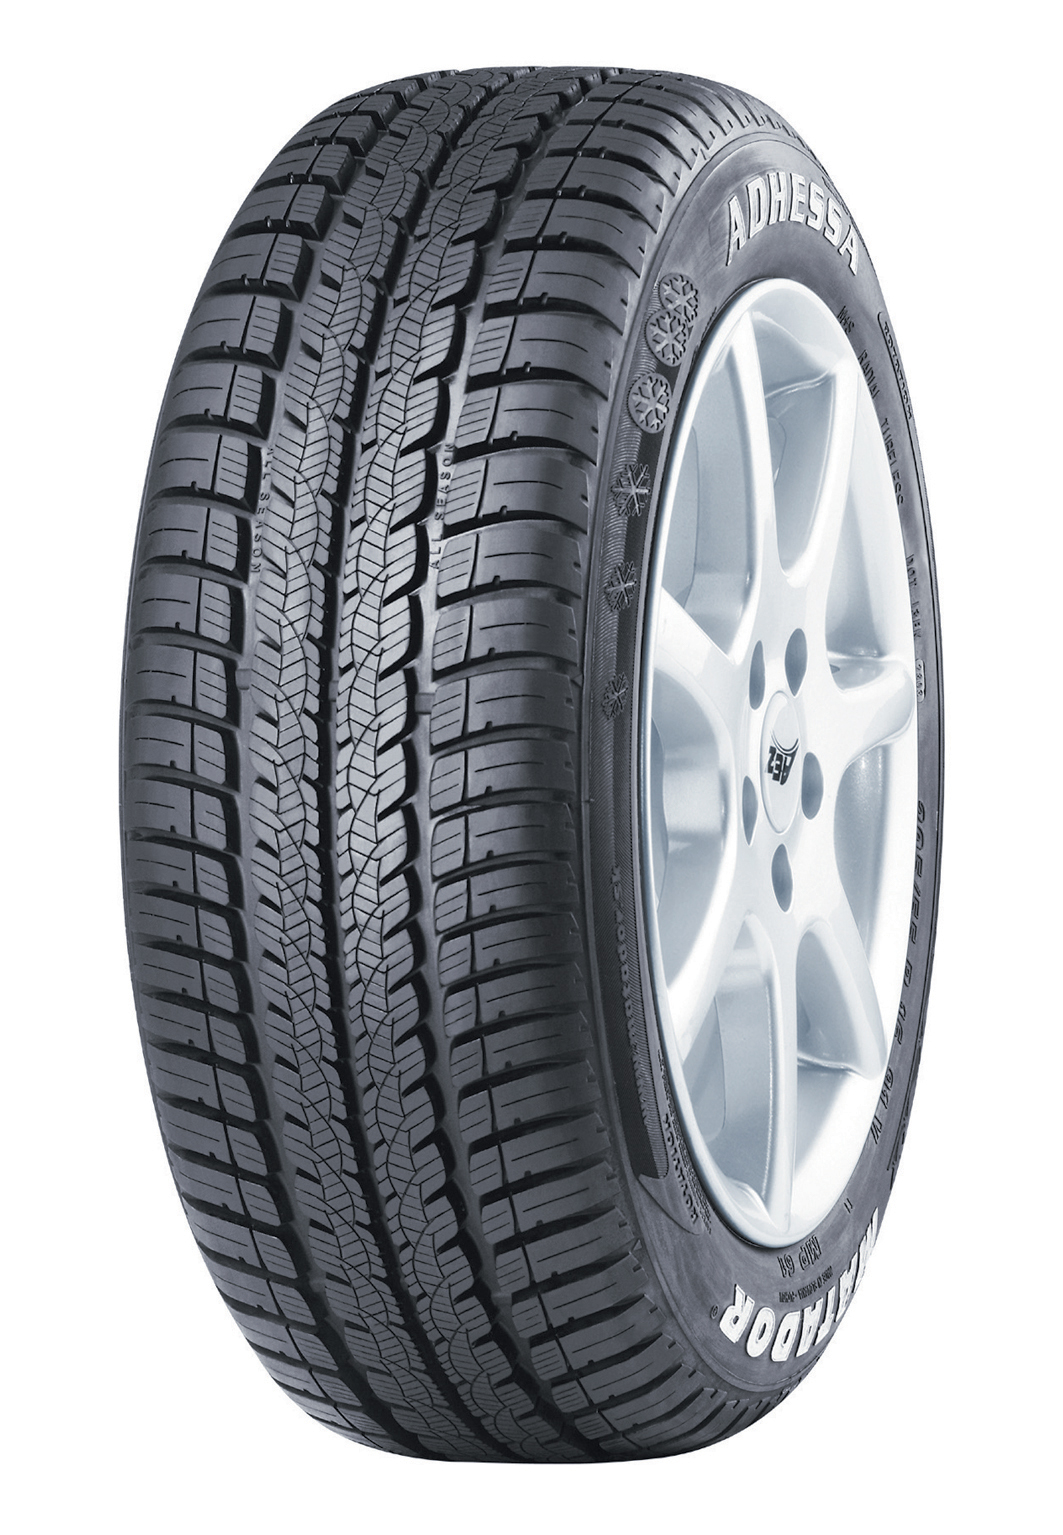 Anvelopa all seasons MATADOR mp 61 adhessa all season 205/55 R16 91H